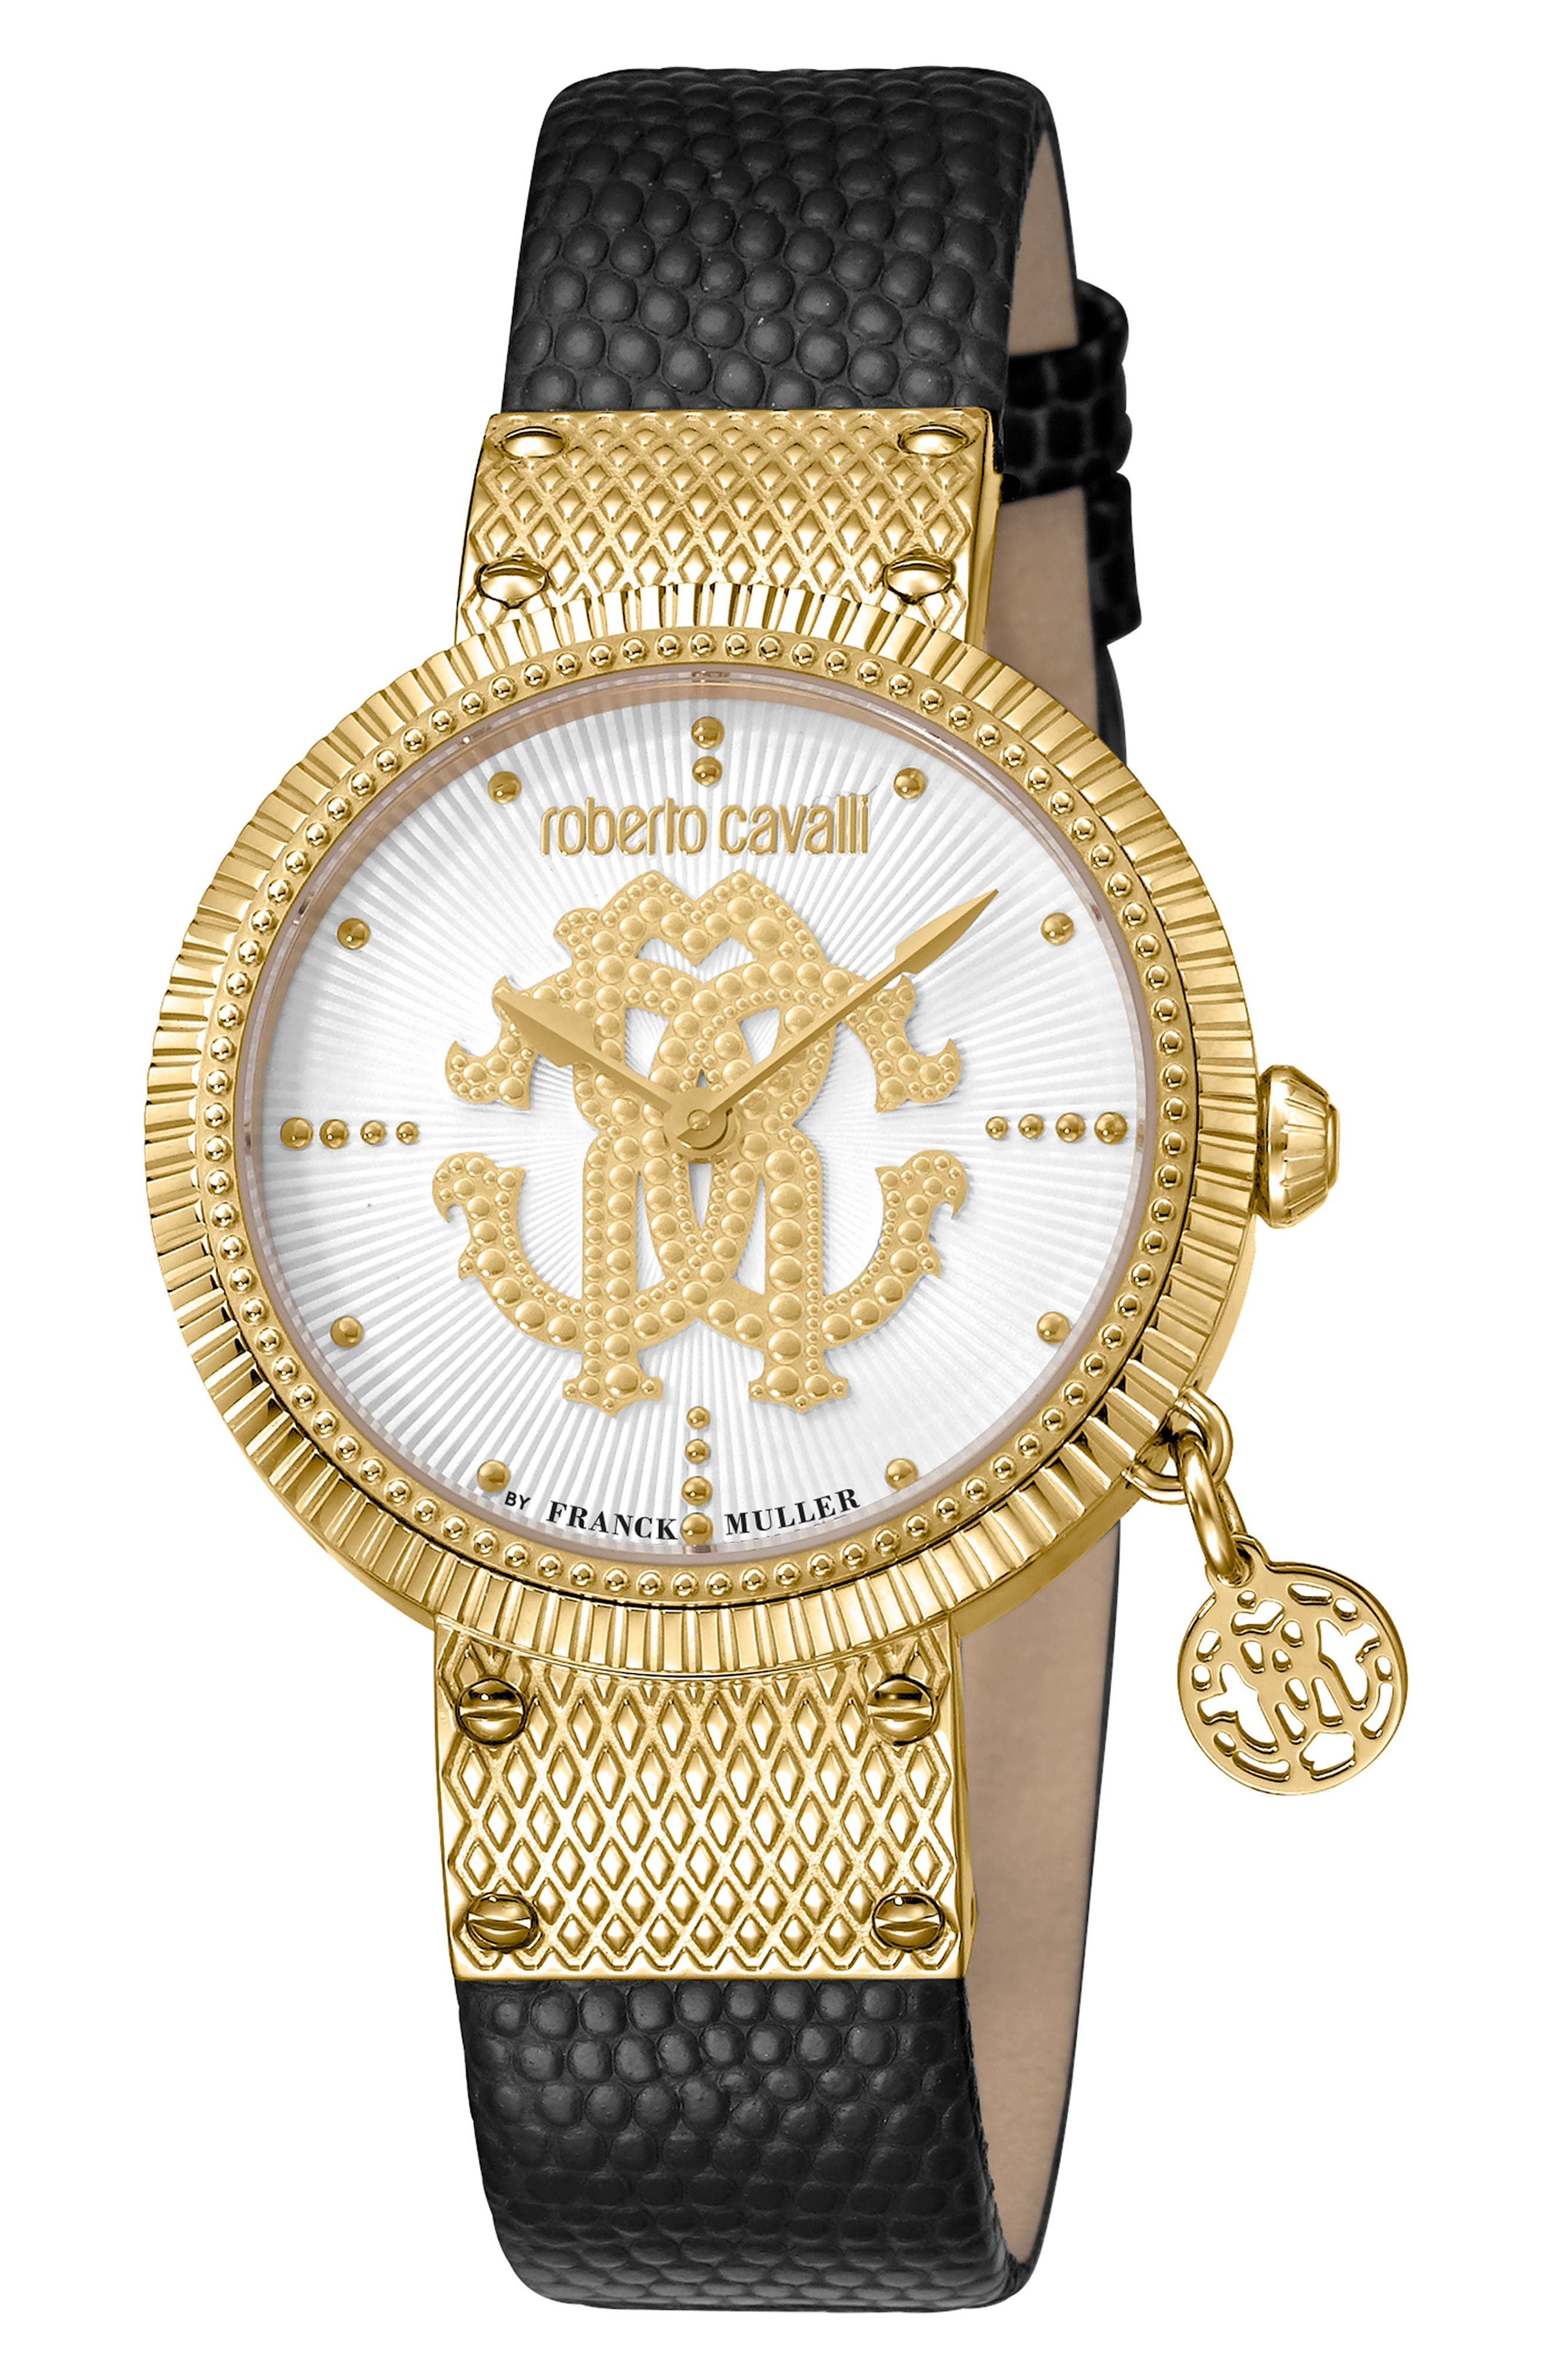 ROBERTO CAVALLI BY FRANCK MULLER Dotted Leather Strap Watch, 34Mm in Black/ Silver/ Gold